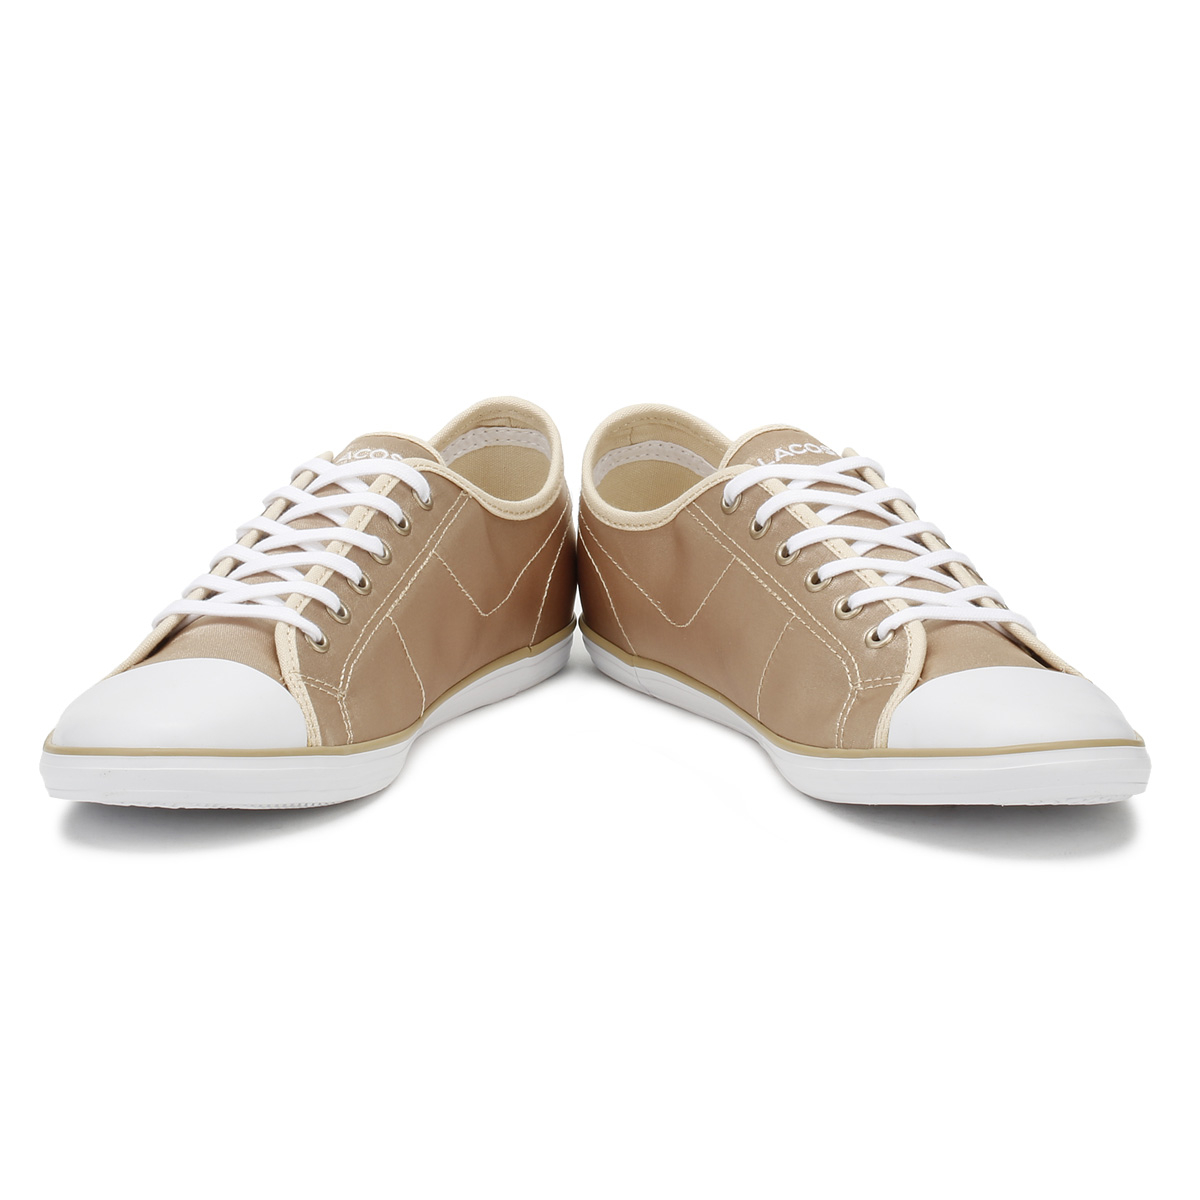 3ded18710b Lacoste Womens Trainers Gold & White Ziane 118 2 Lace Up Sport Casual Shoes